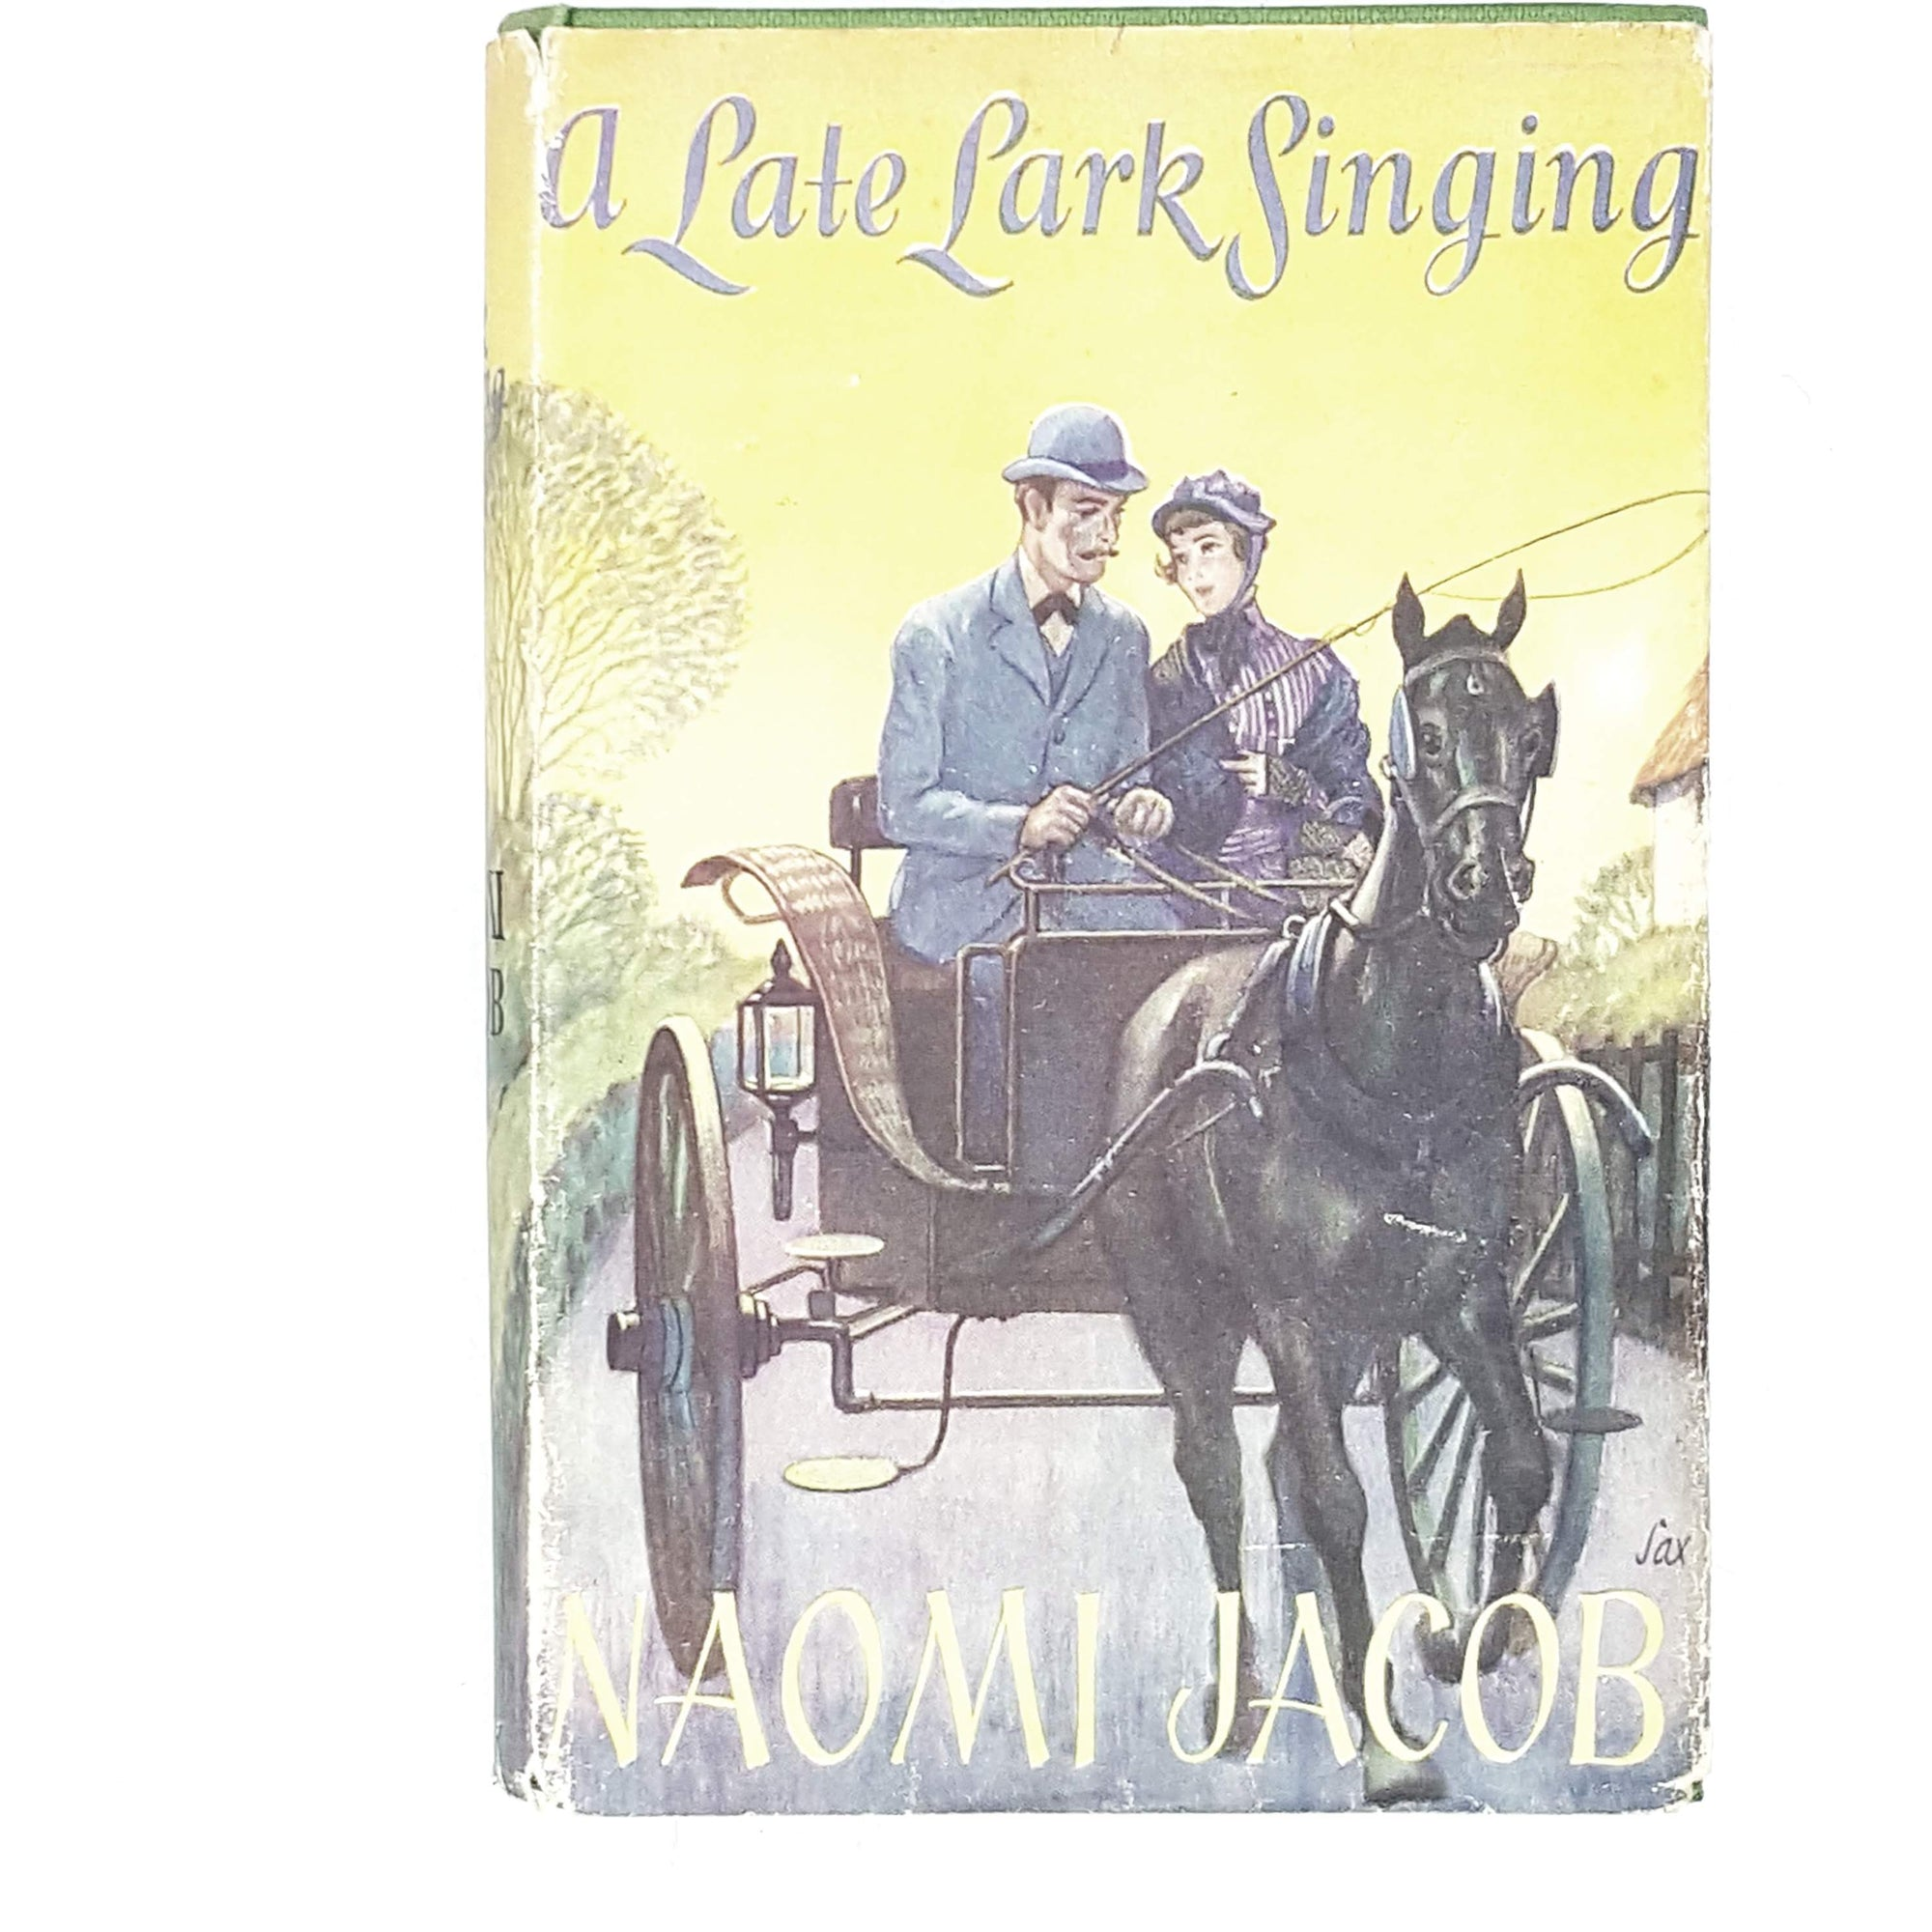 A Late Park Singing by Naomi Jacob